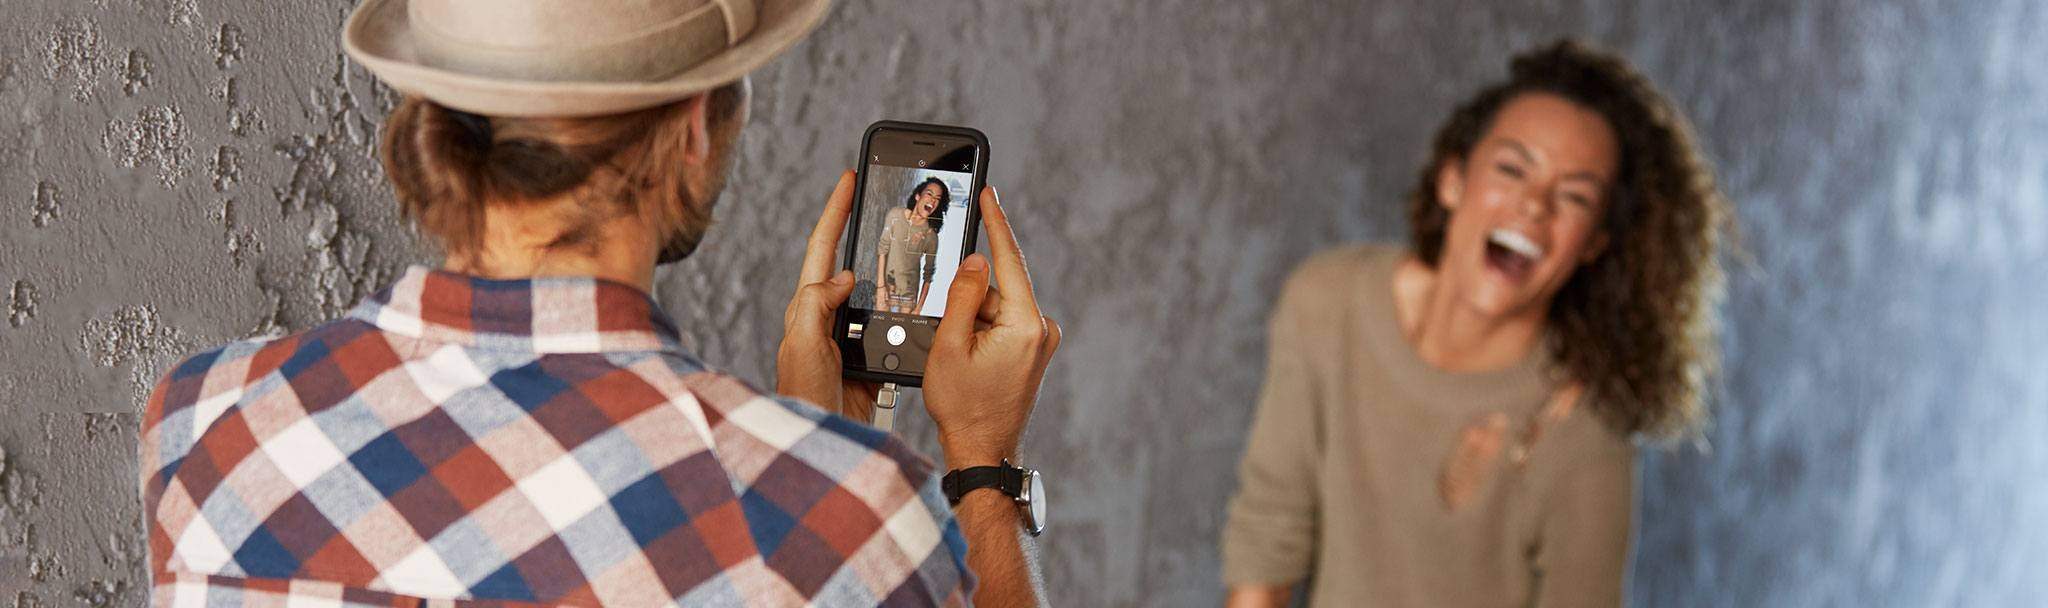 Never miss a moment, snap more pictures with the Bolt